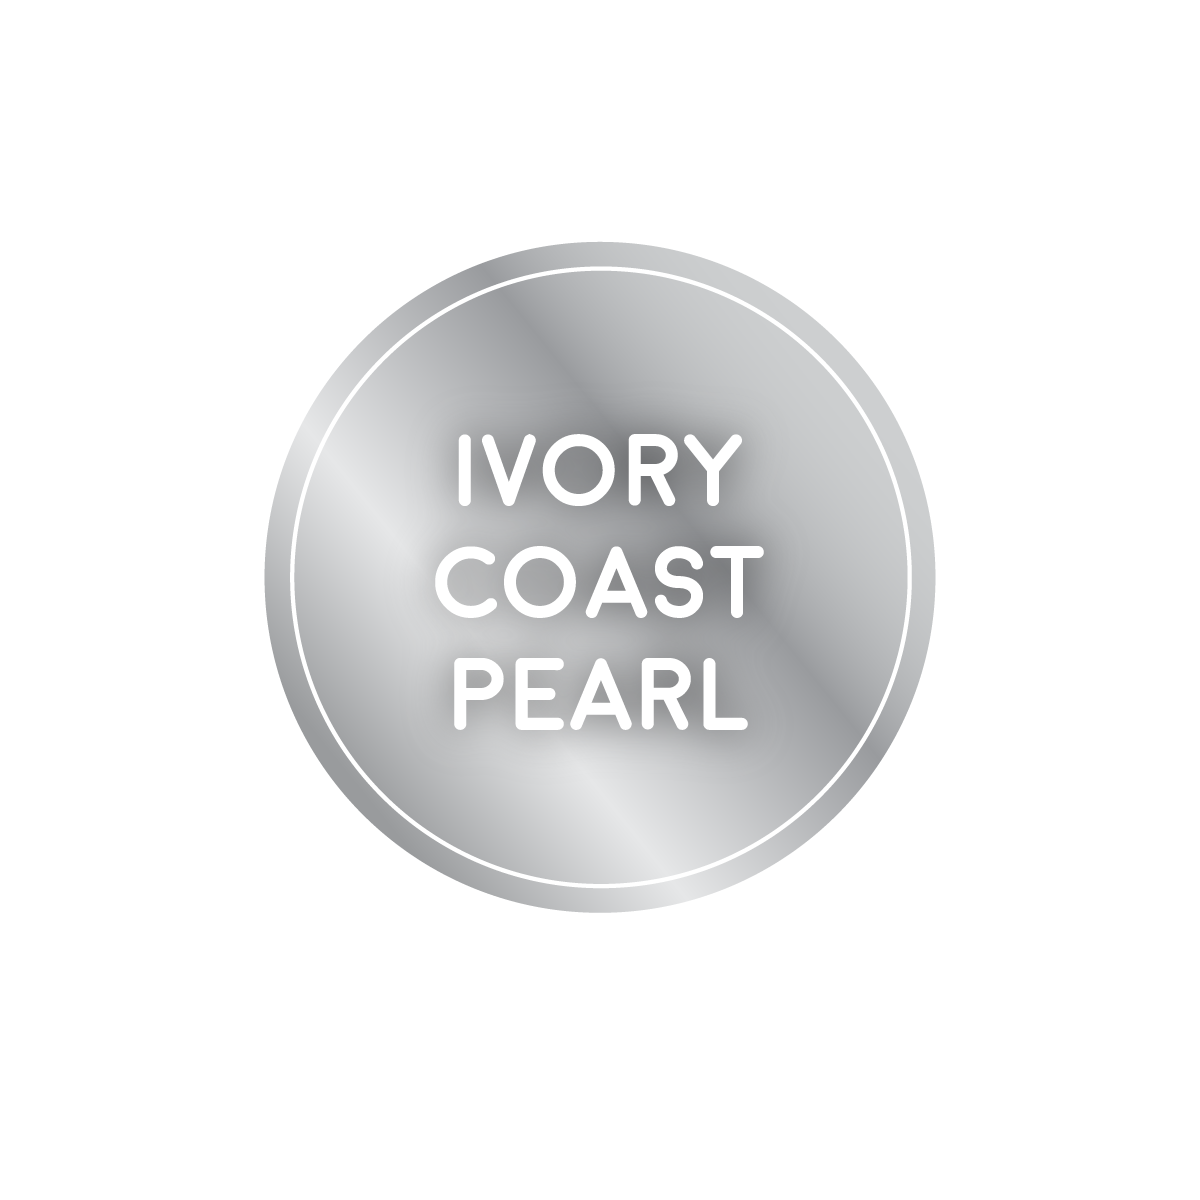 pearl-label-01.png